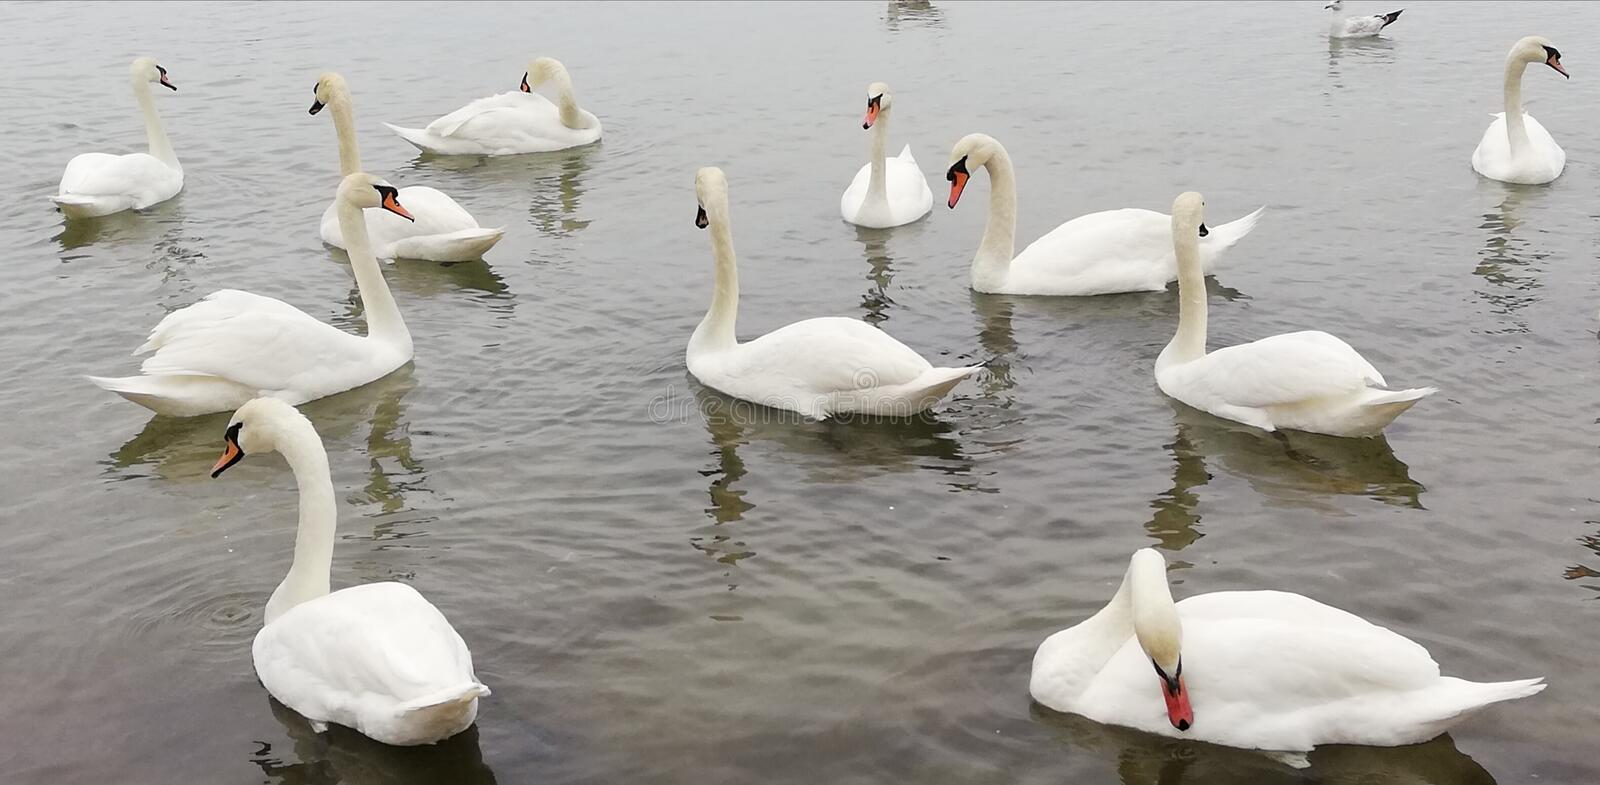 Background. Pack of beautiful white swans on the quiet surface of the sea. Graceful regal birds. royalty free stock photo